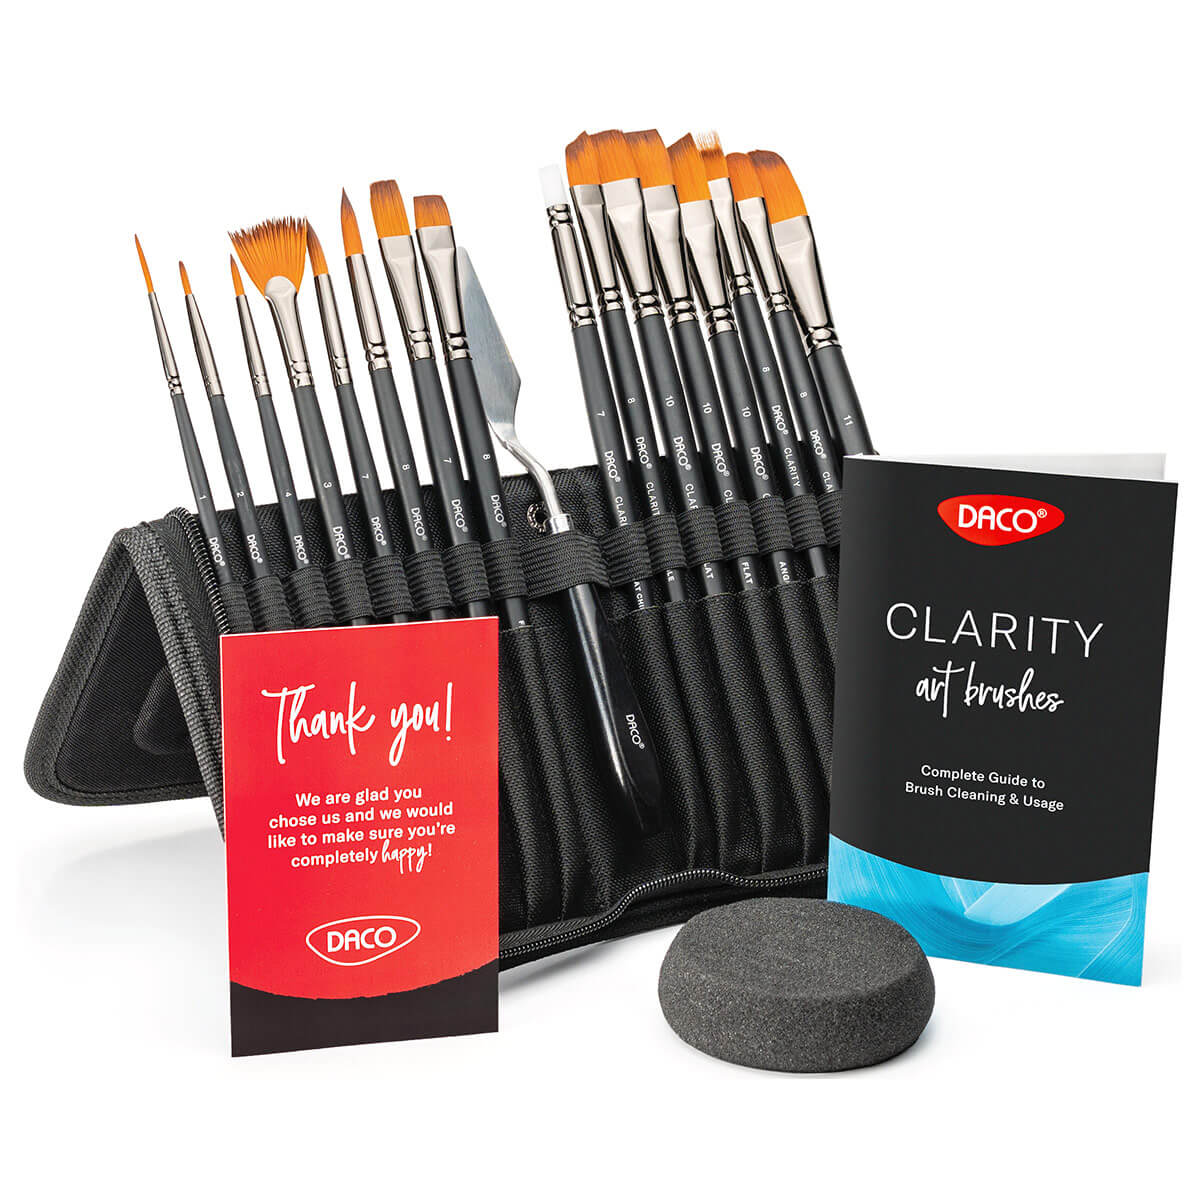 Artist Paint Brushes Clarity, 15pcs+1 with Palette Knife